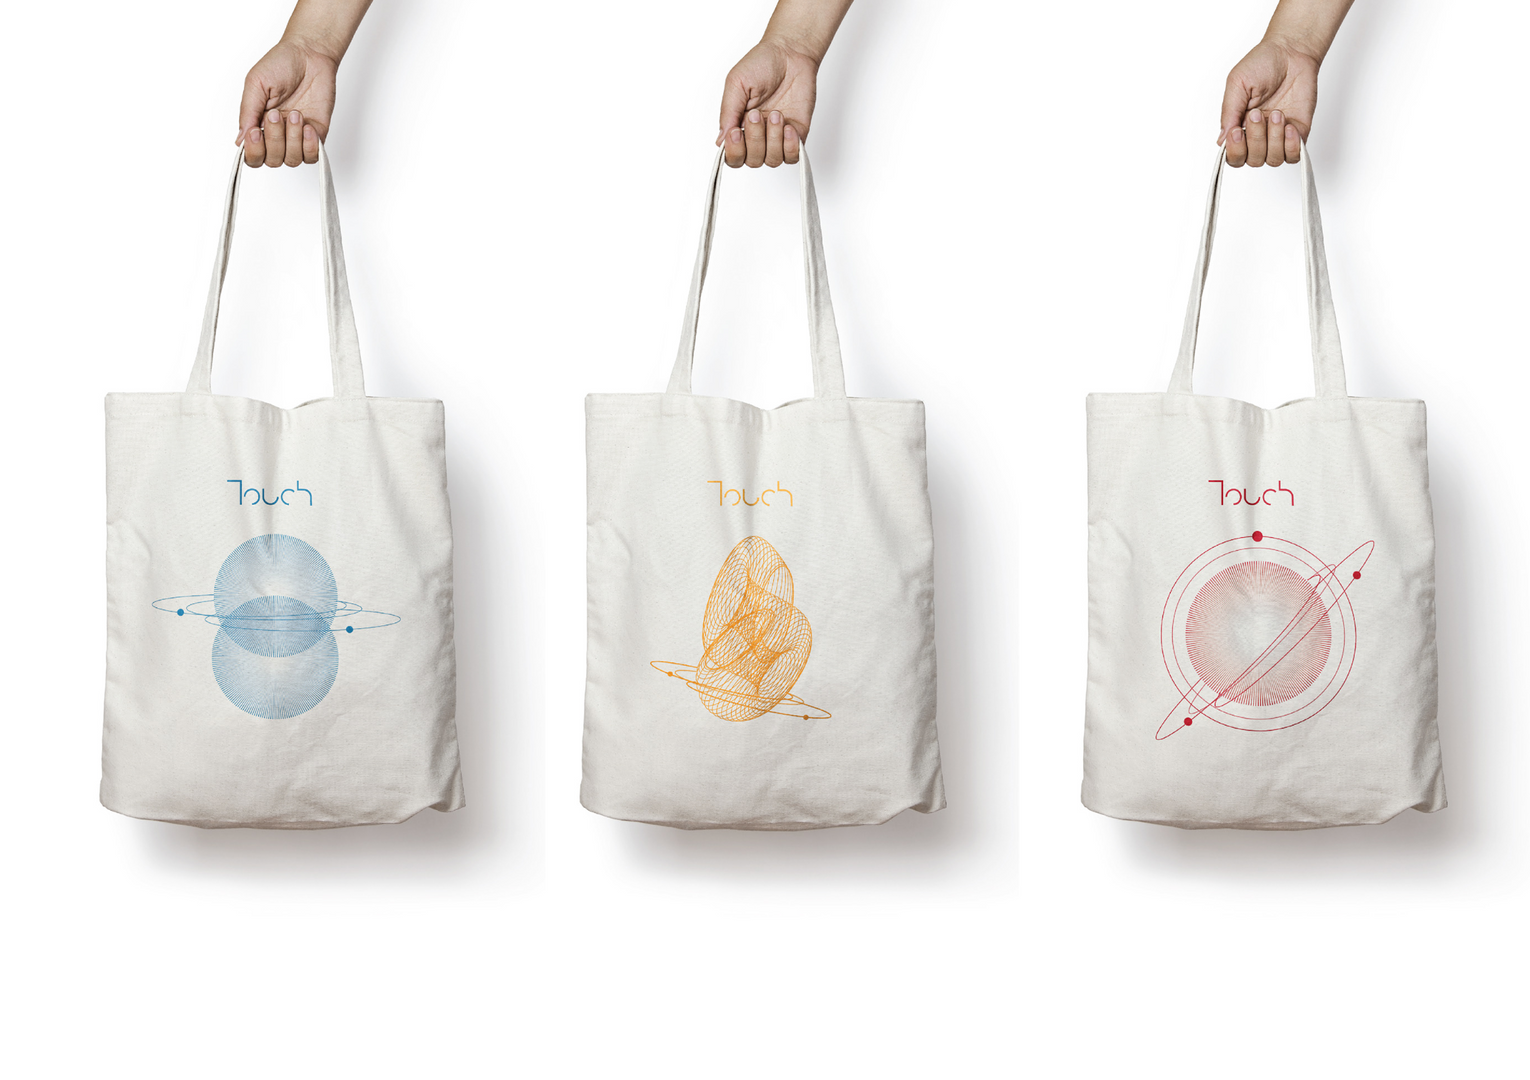 touch branded bags